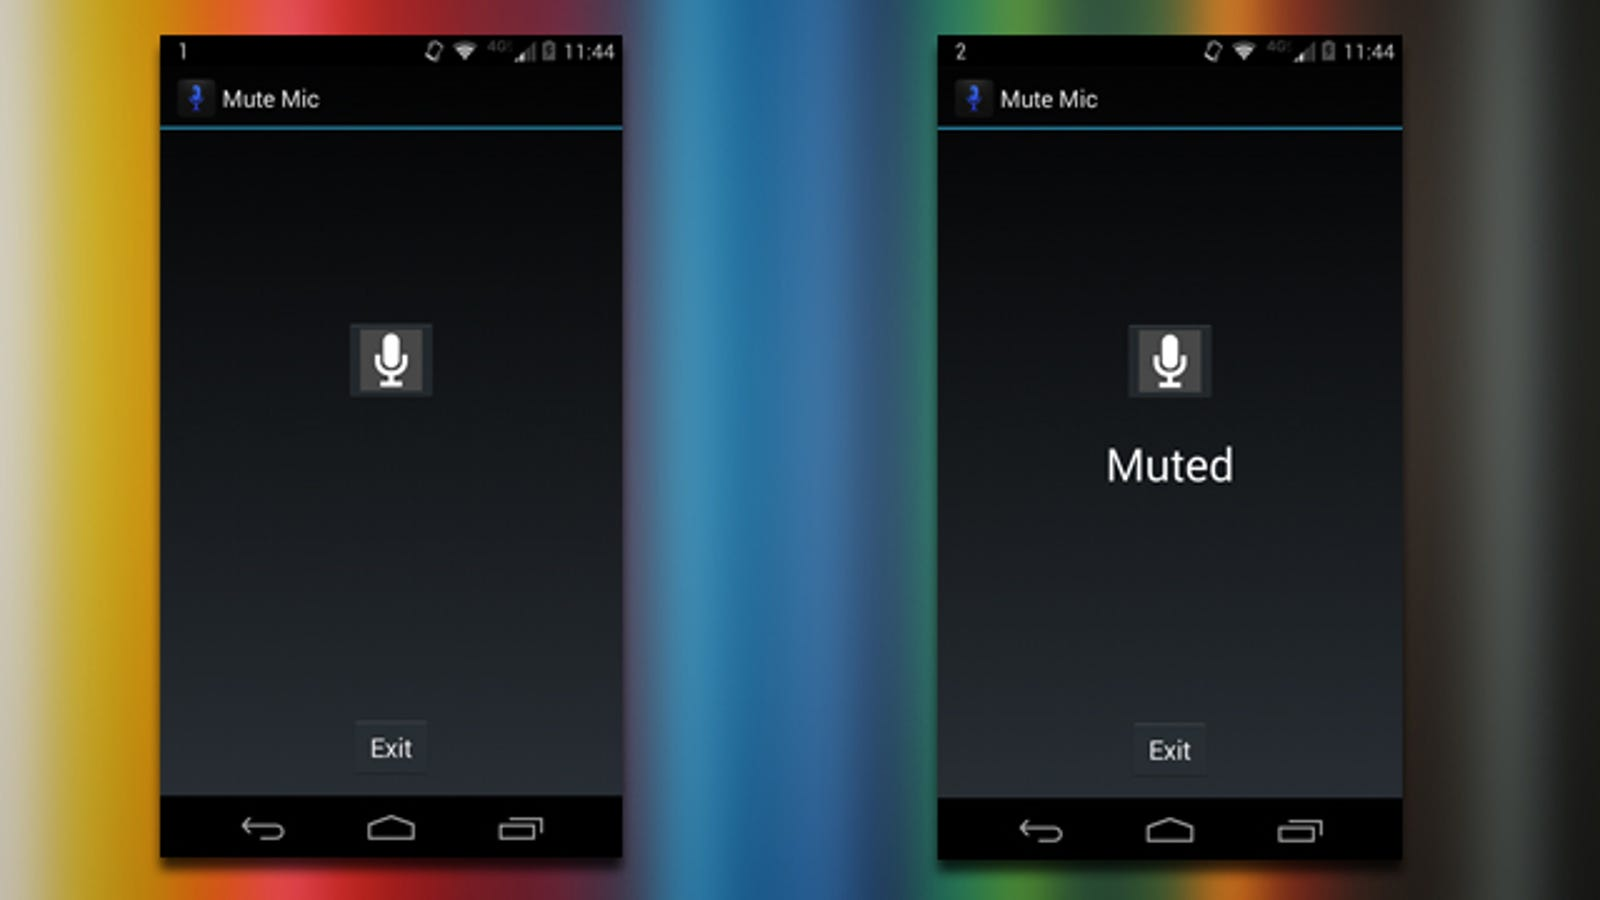 Mute Mic Prevents Your Phone's Microphone From Recording Audio